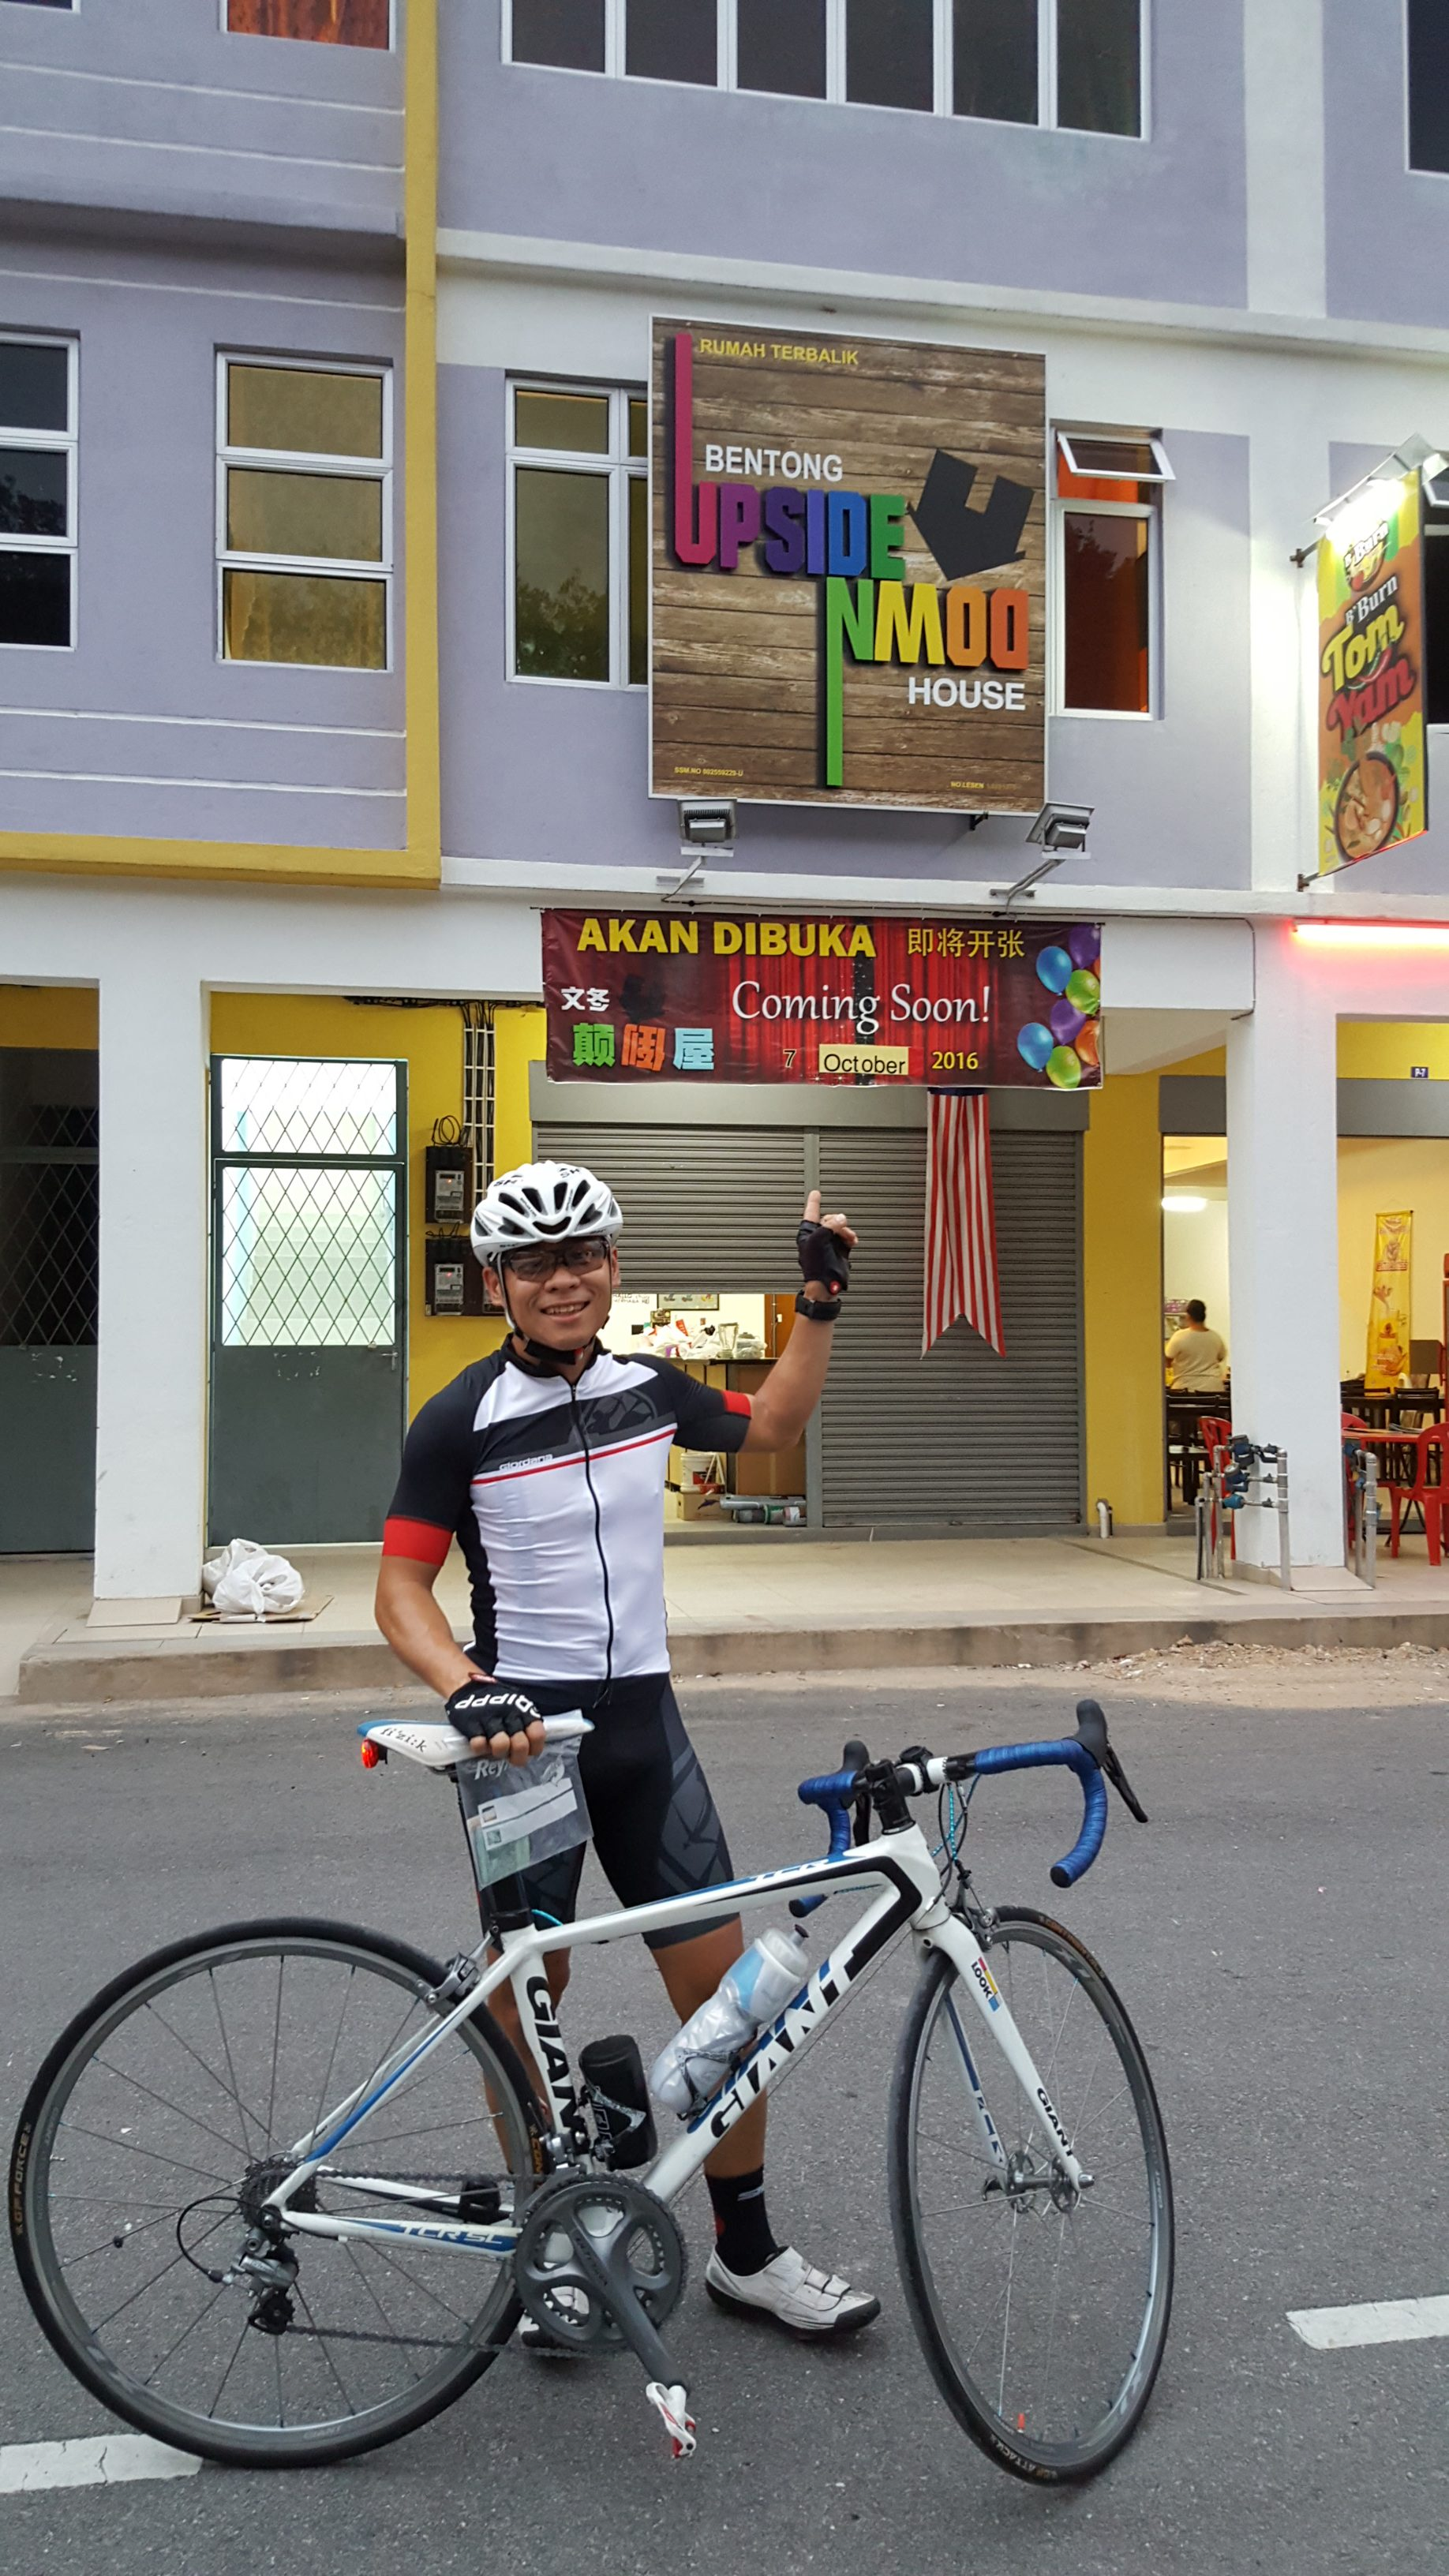 Cycle to Bentong's latest attraction, the Upside Down House. (Gan Heng Chye)